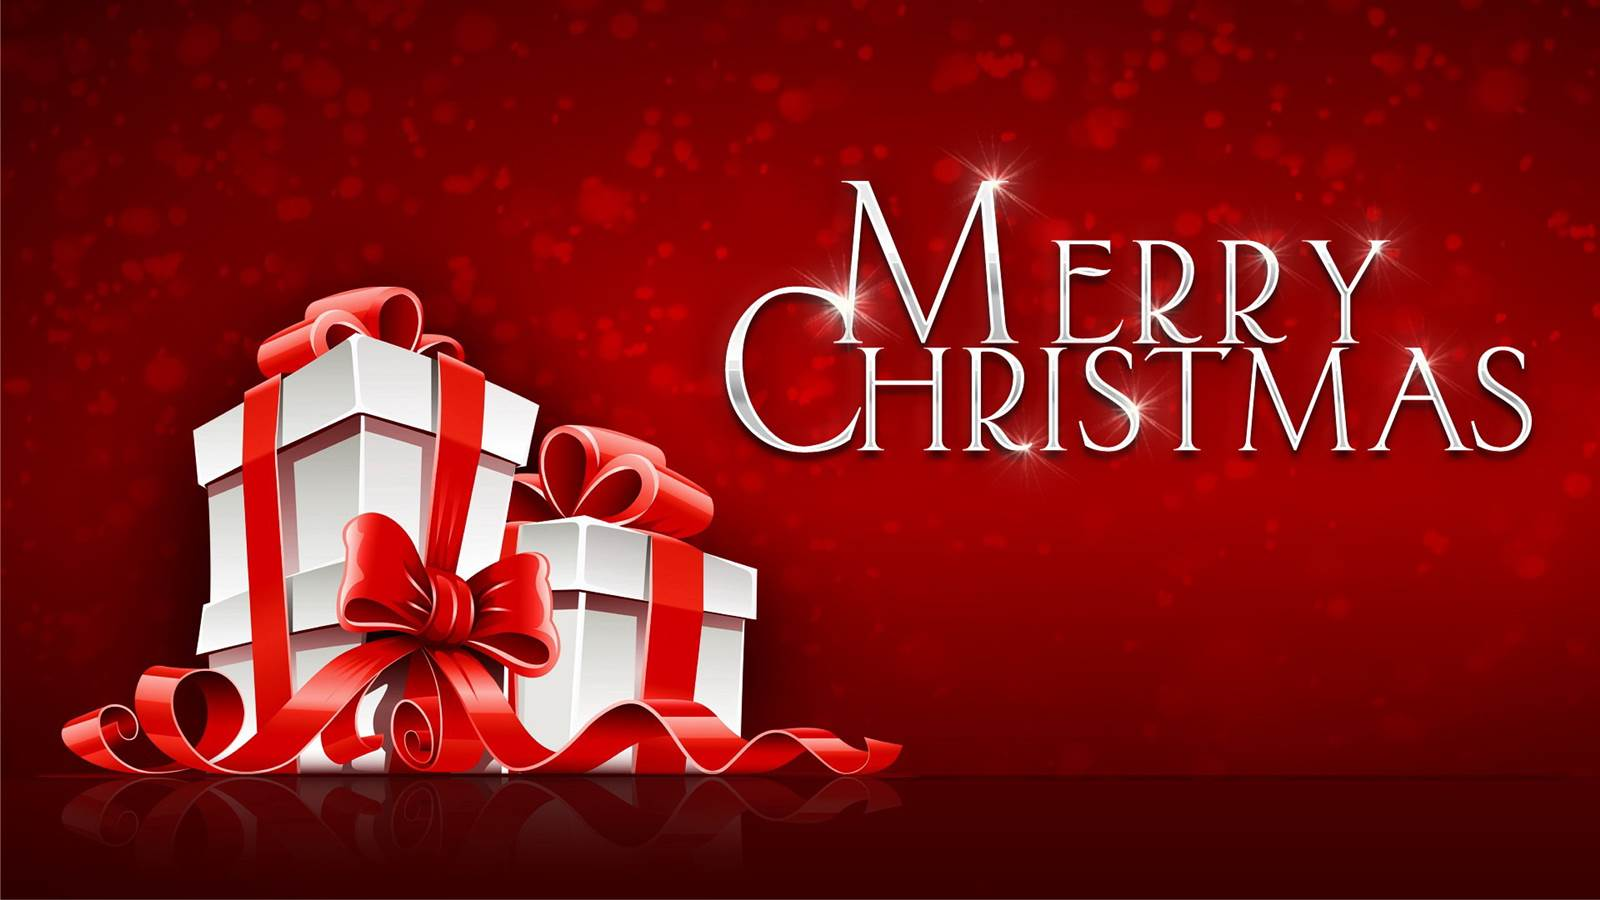 Top christmas greetings 15 awesome merry christmas greeting top merry christmas e cards kristyandbryce Images